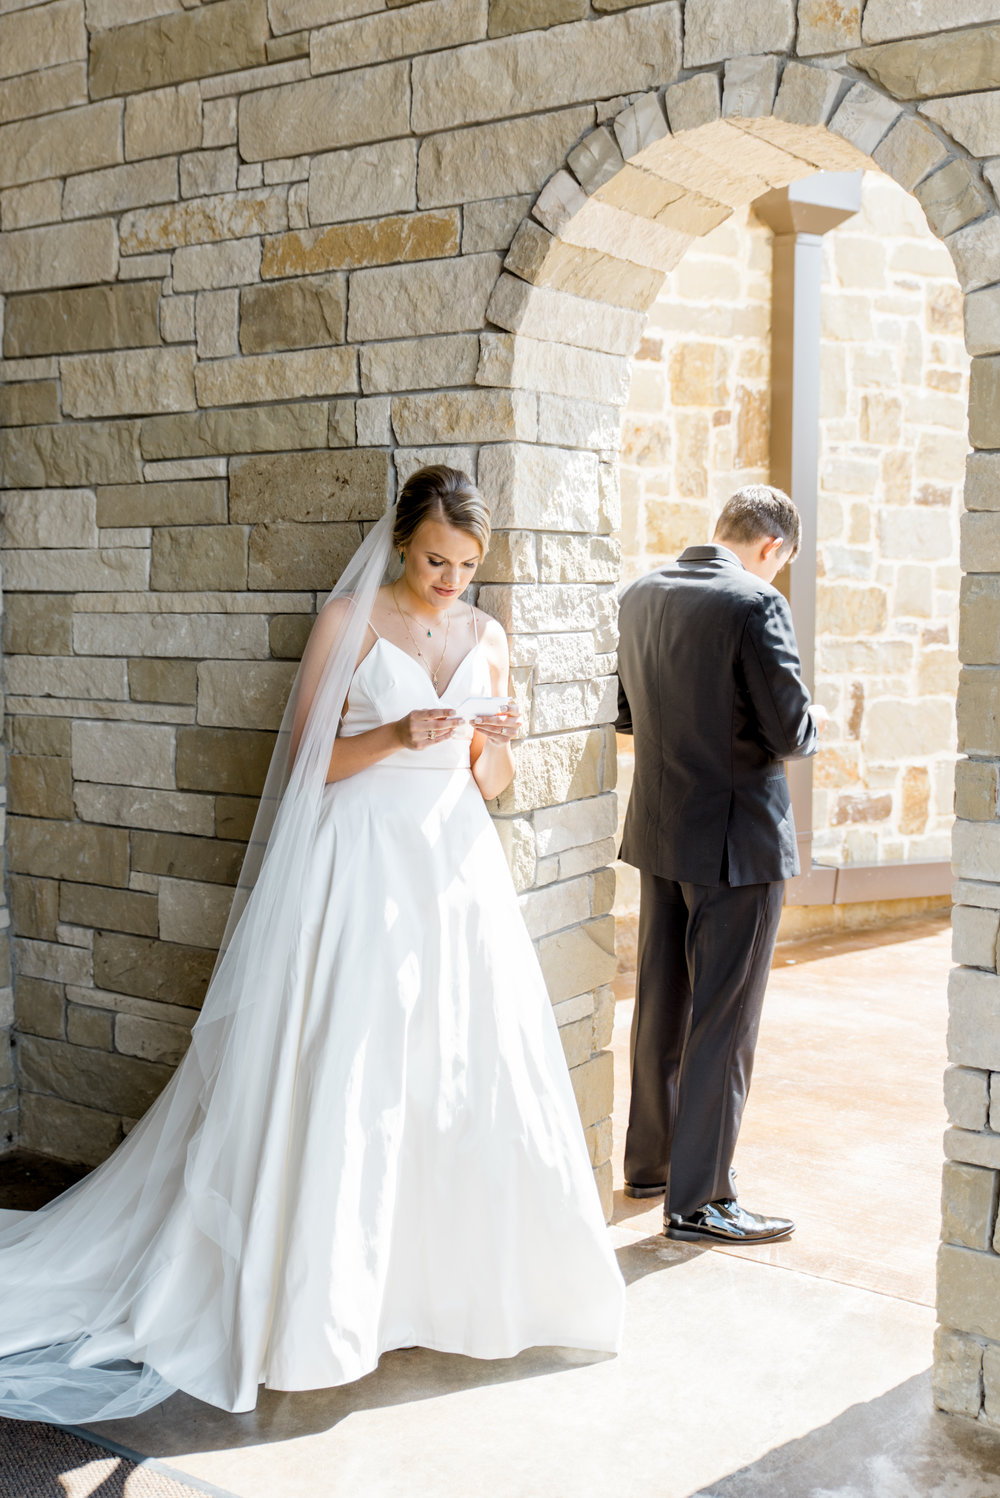 bride and groom wedding day letters gifts canyonwood ridge austin wedding planner epoch co